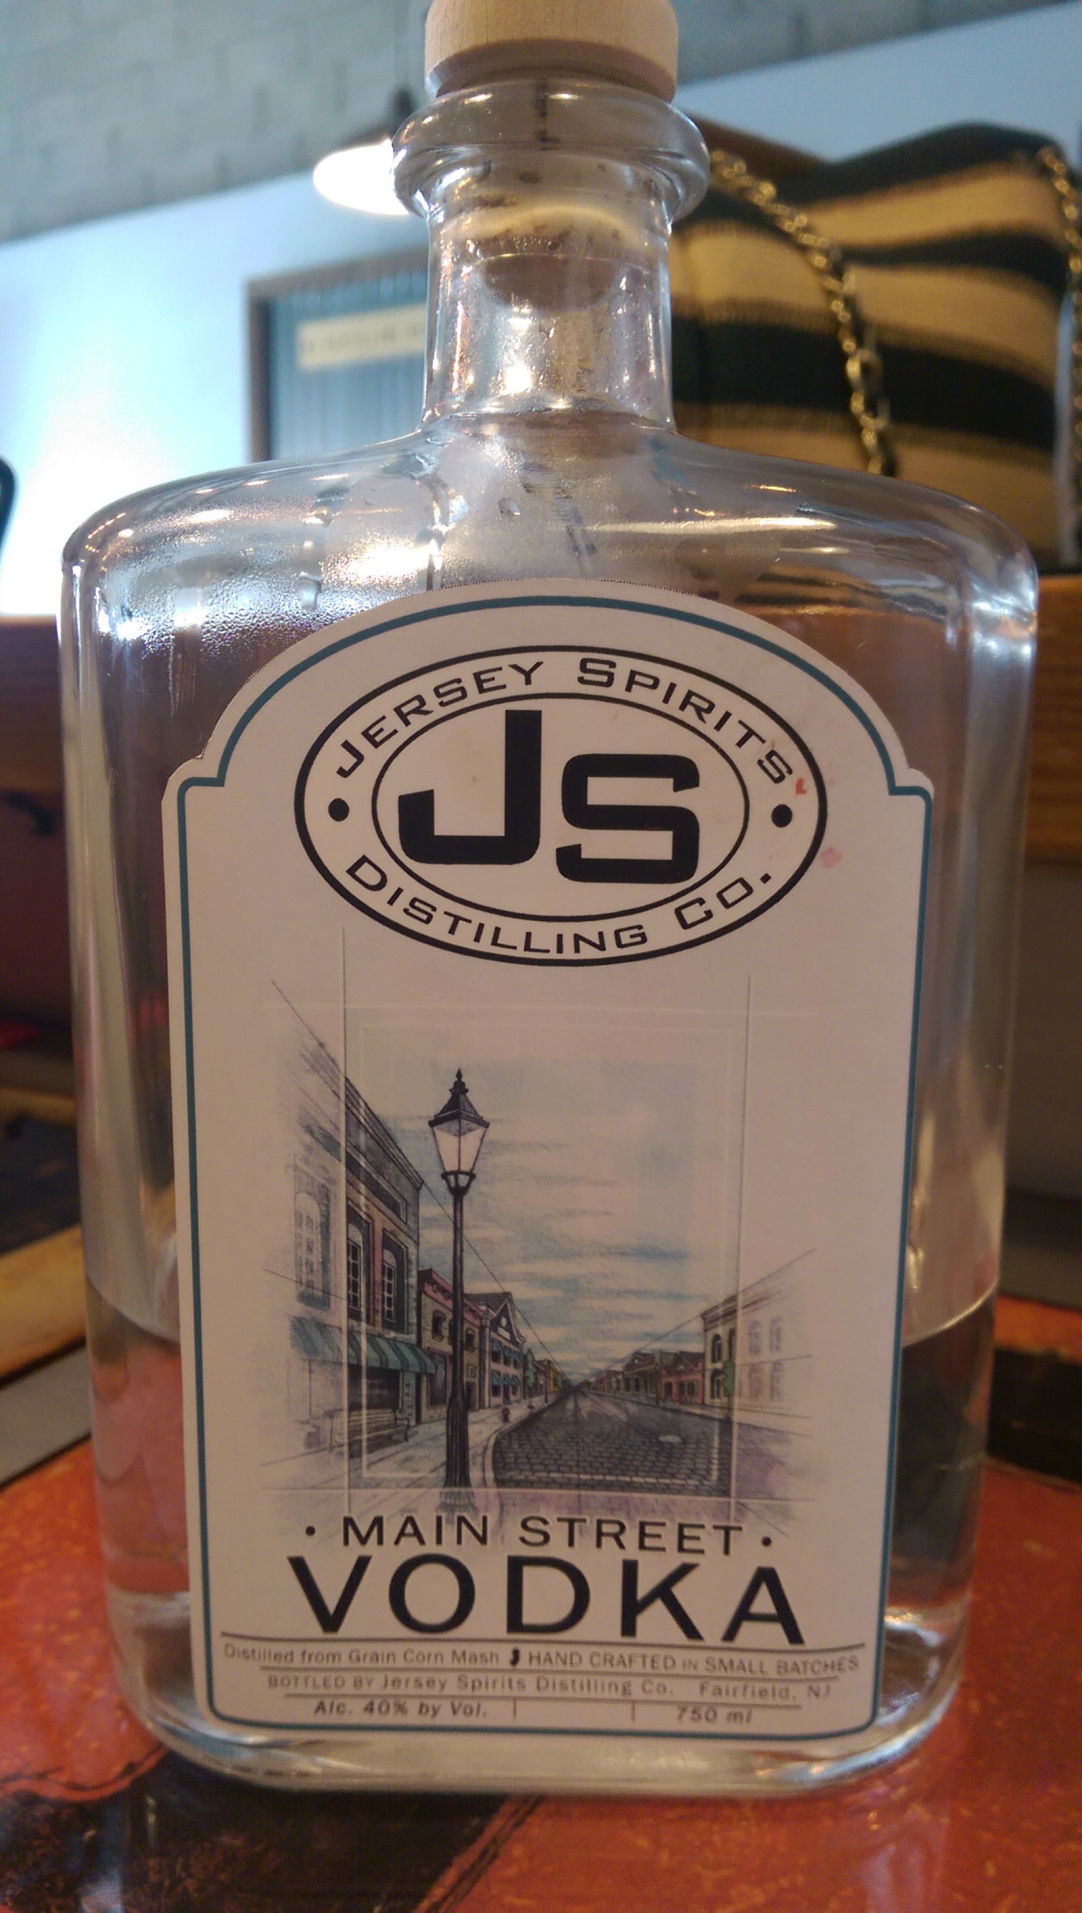 Jersey Spirits Distilling Co. 2